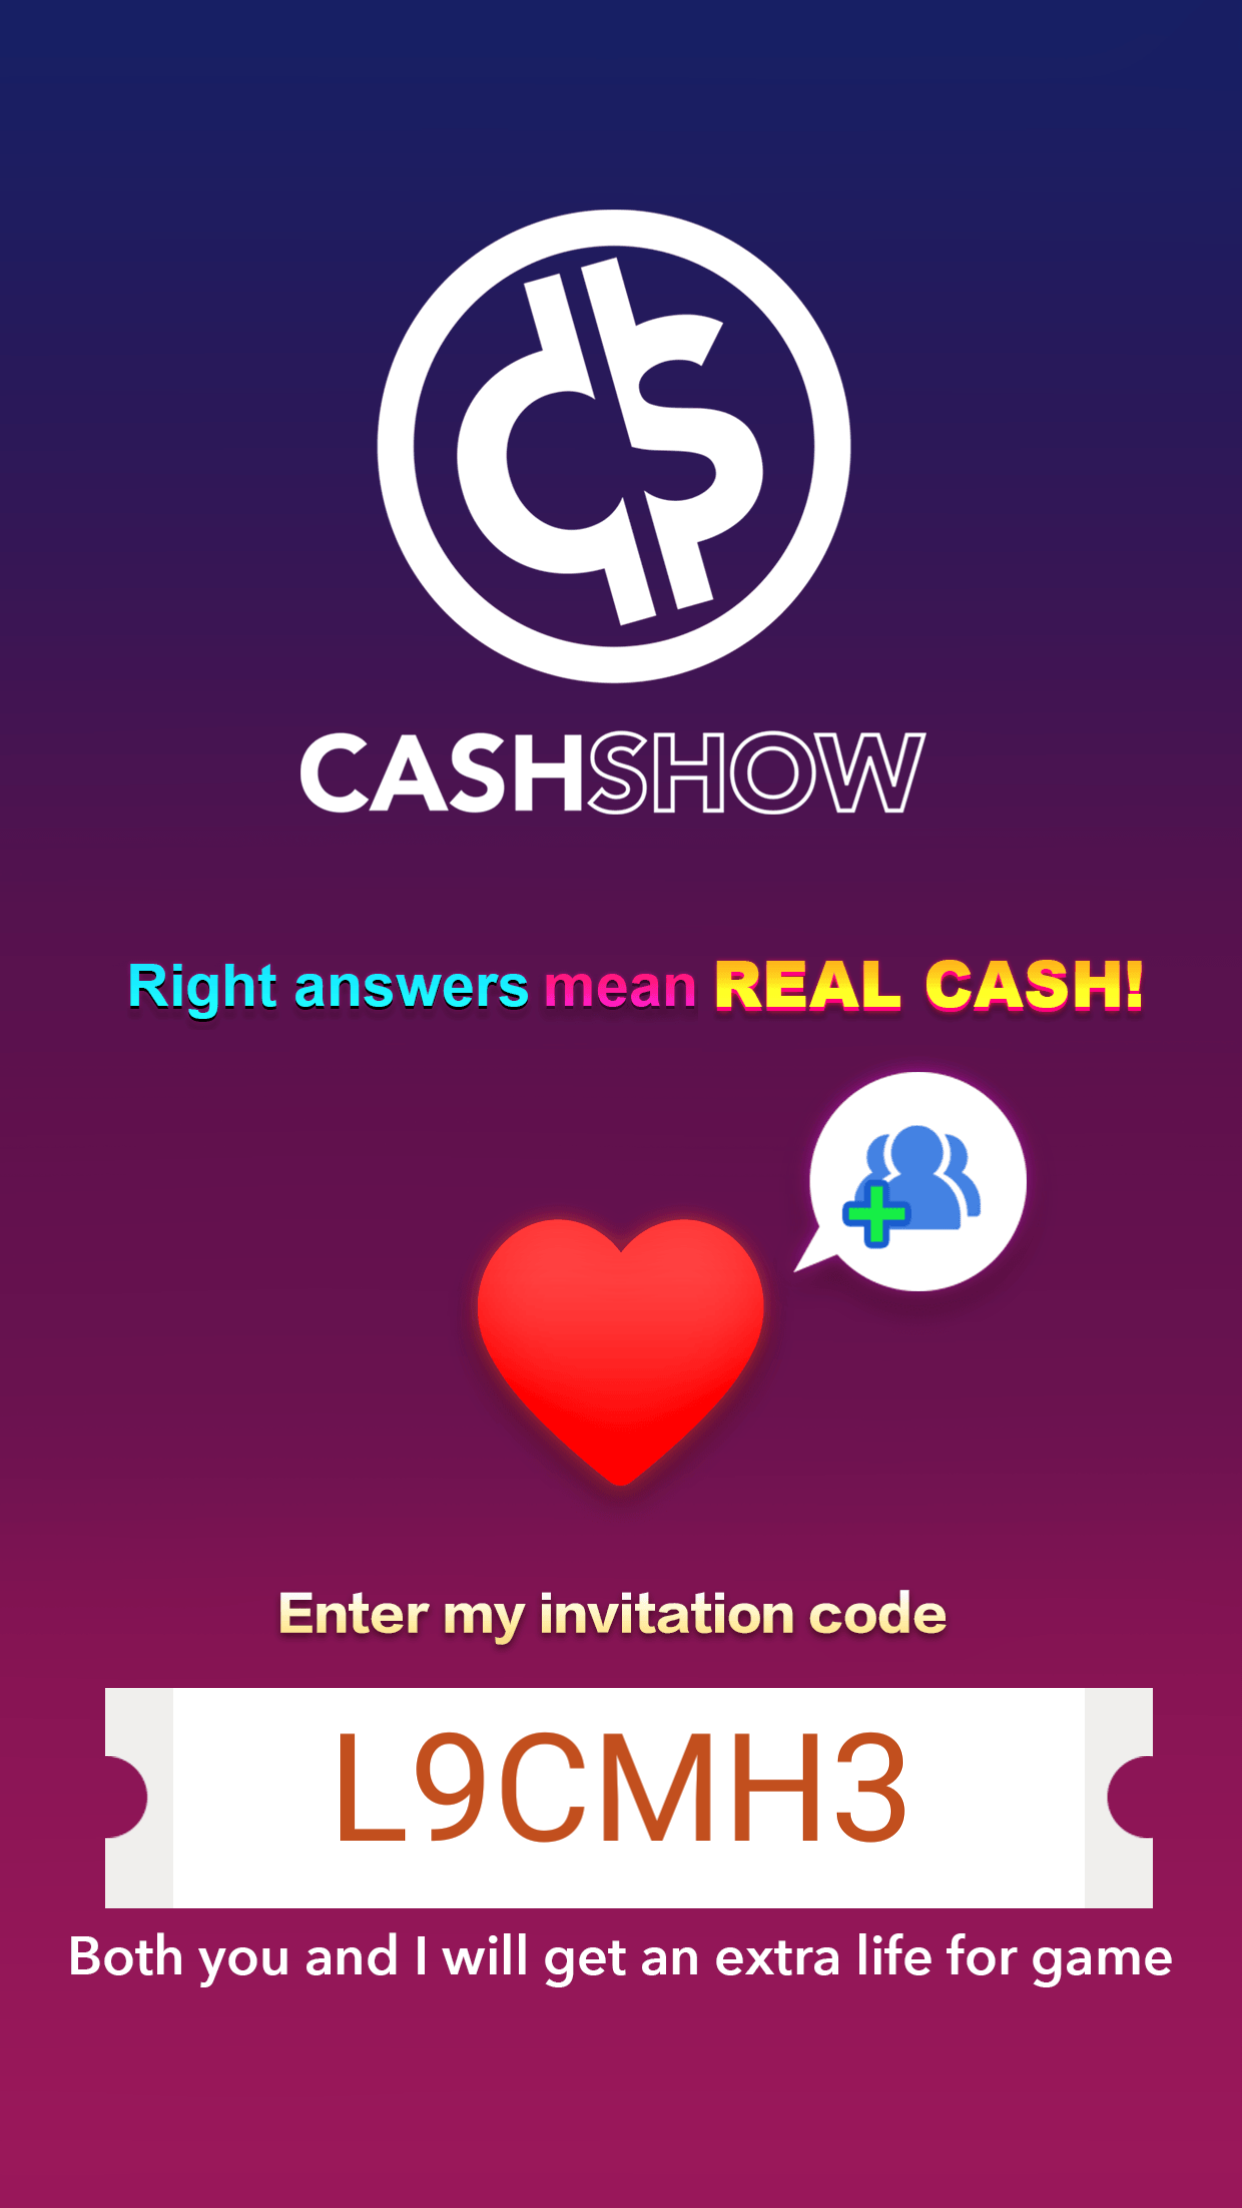 I M Playing Cash Show Come And Play With Me Enter My Invitation Code And Both Of Us Can Get An Extra Life In Game How To Get Money Invitations Win Money